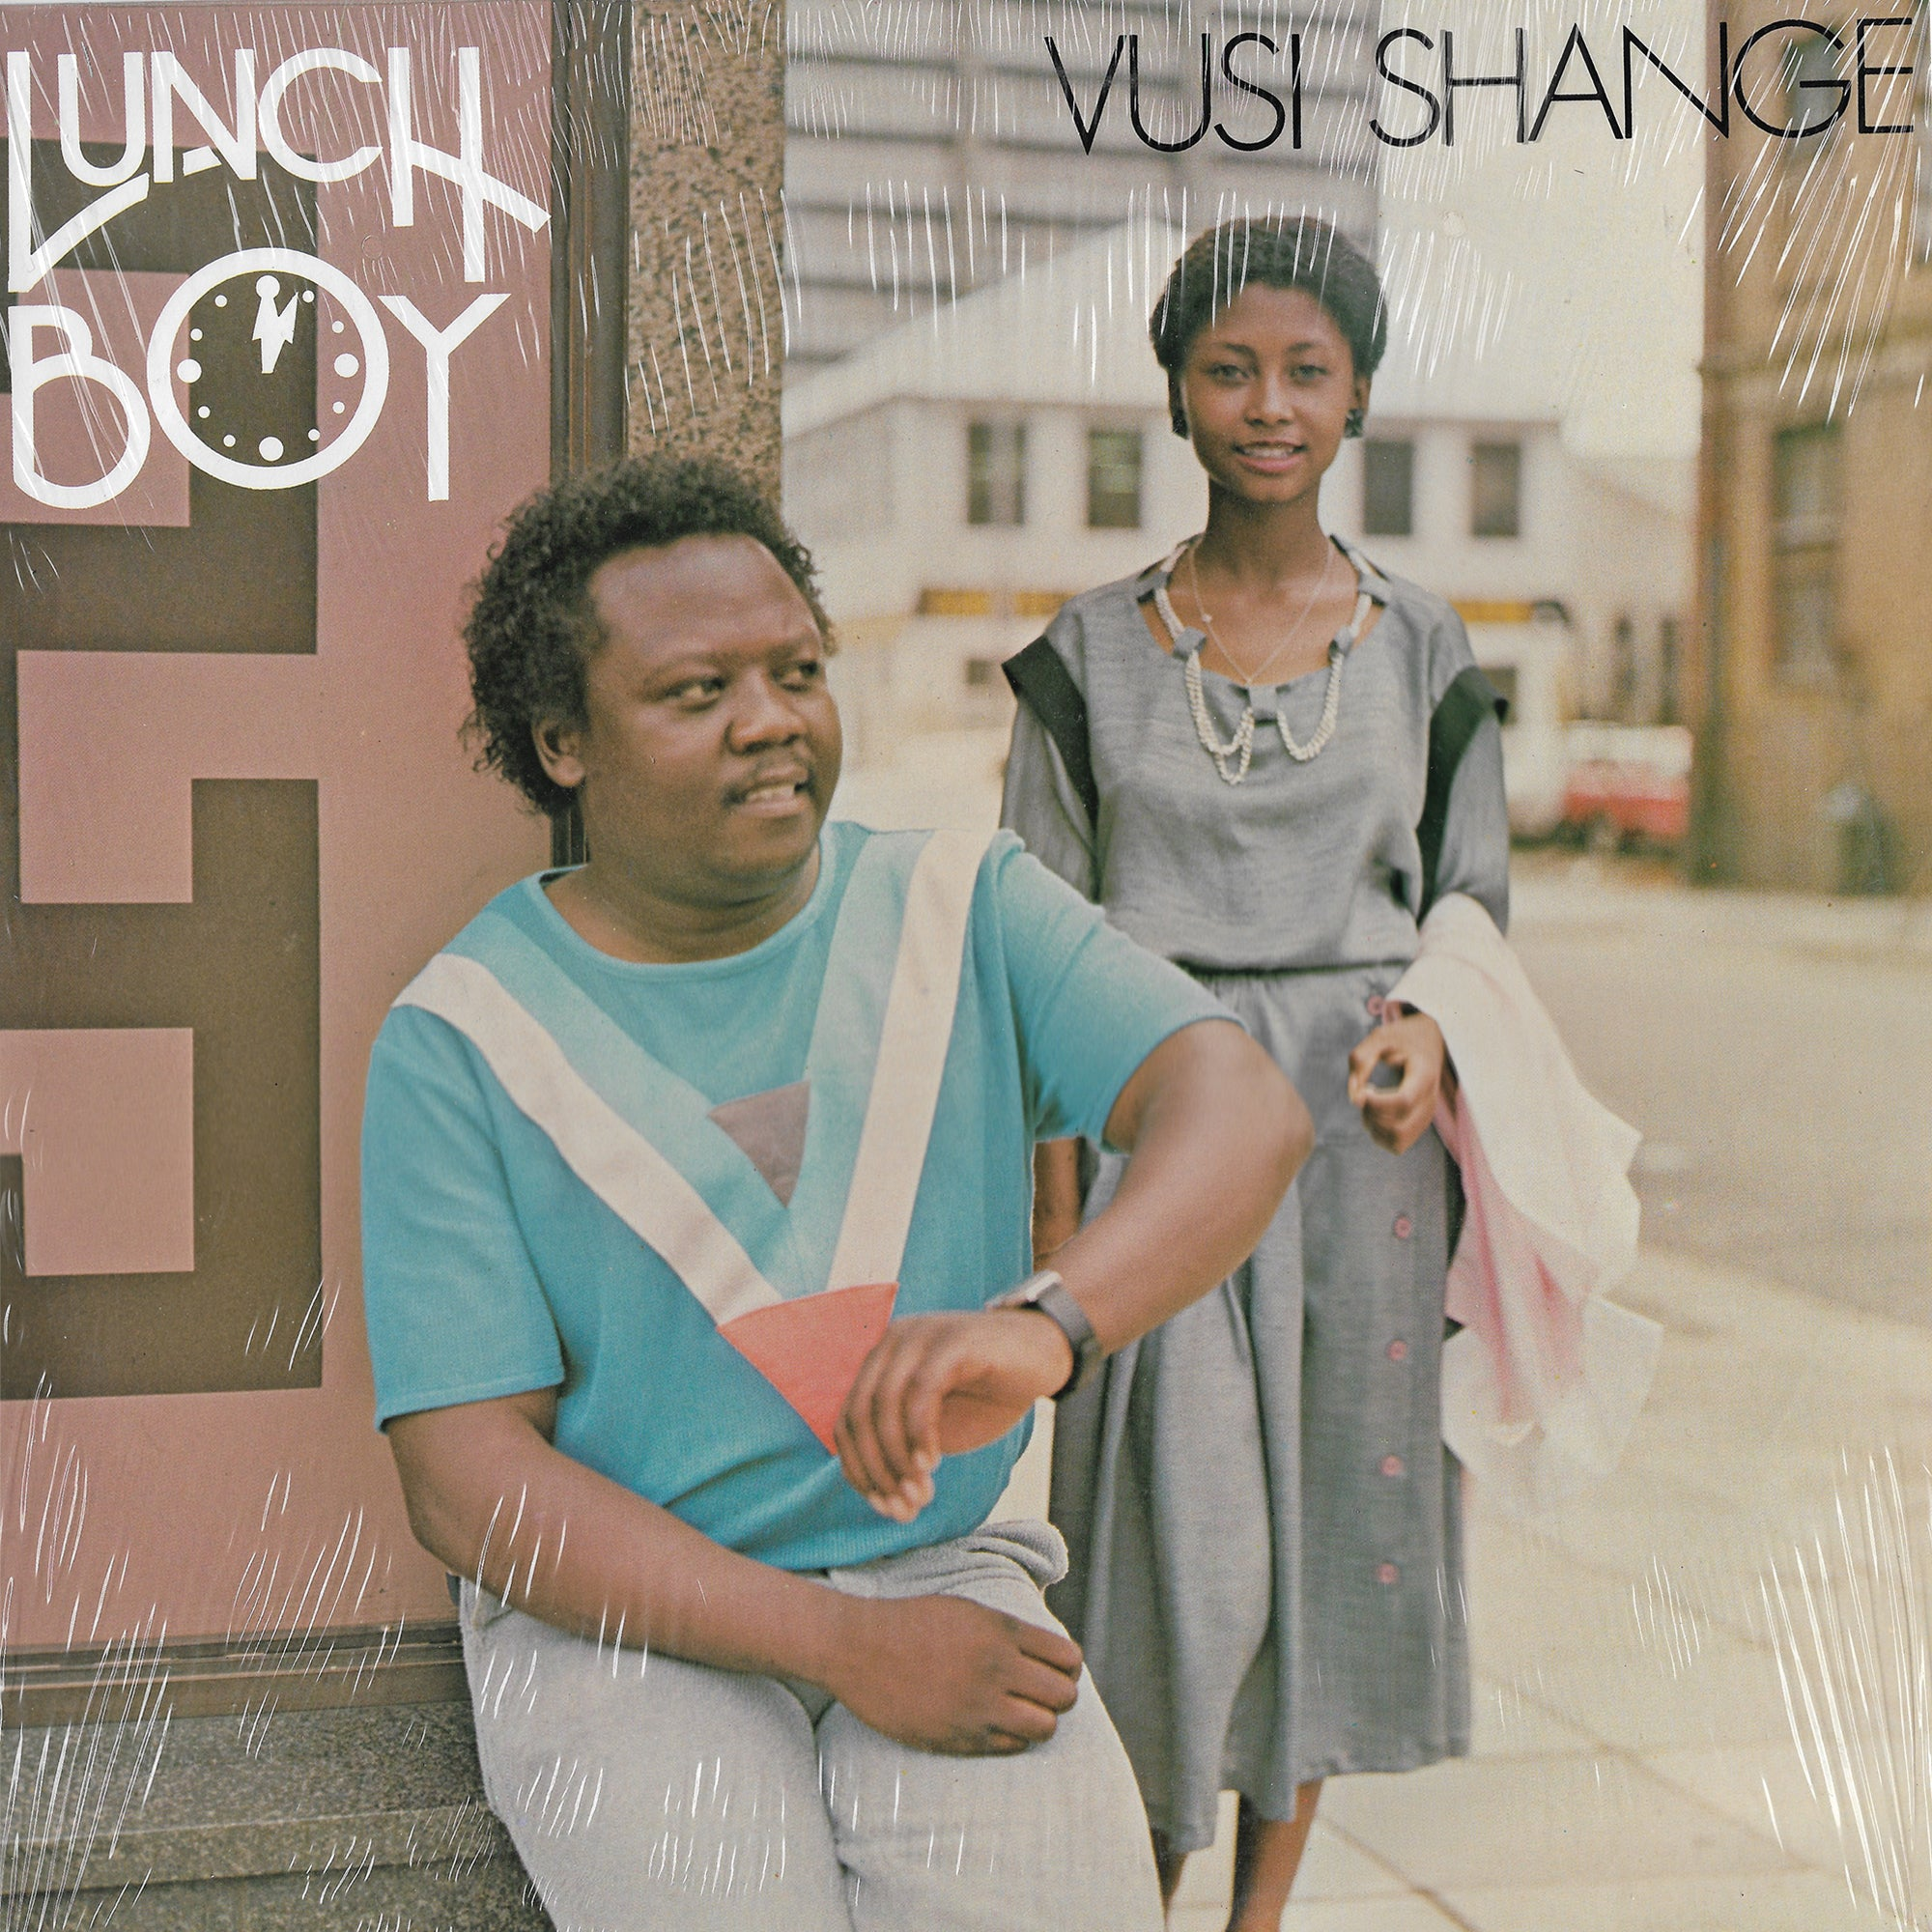 Vusi Shange - Lunch Boy